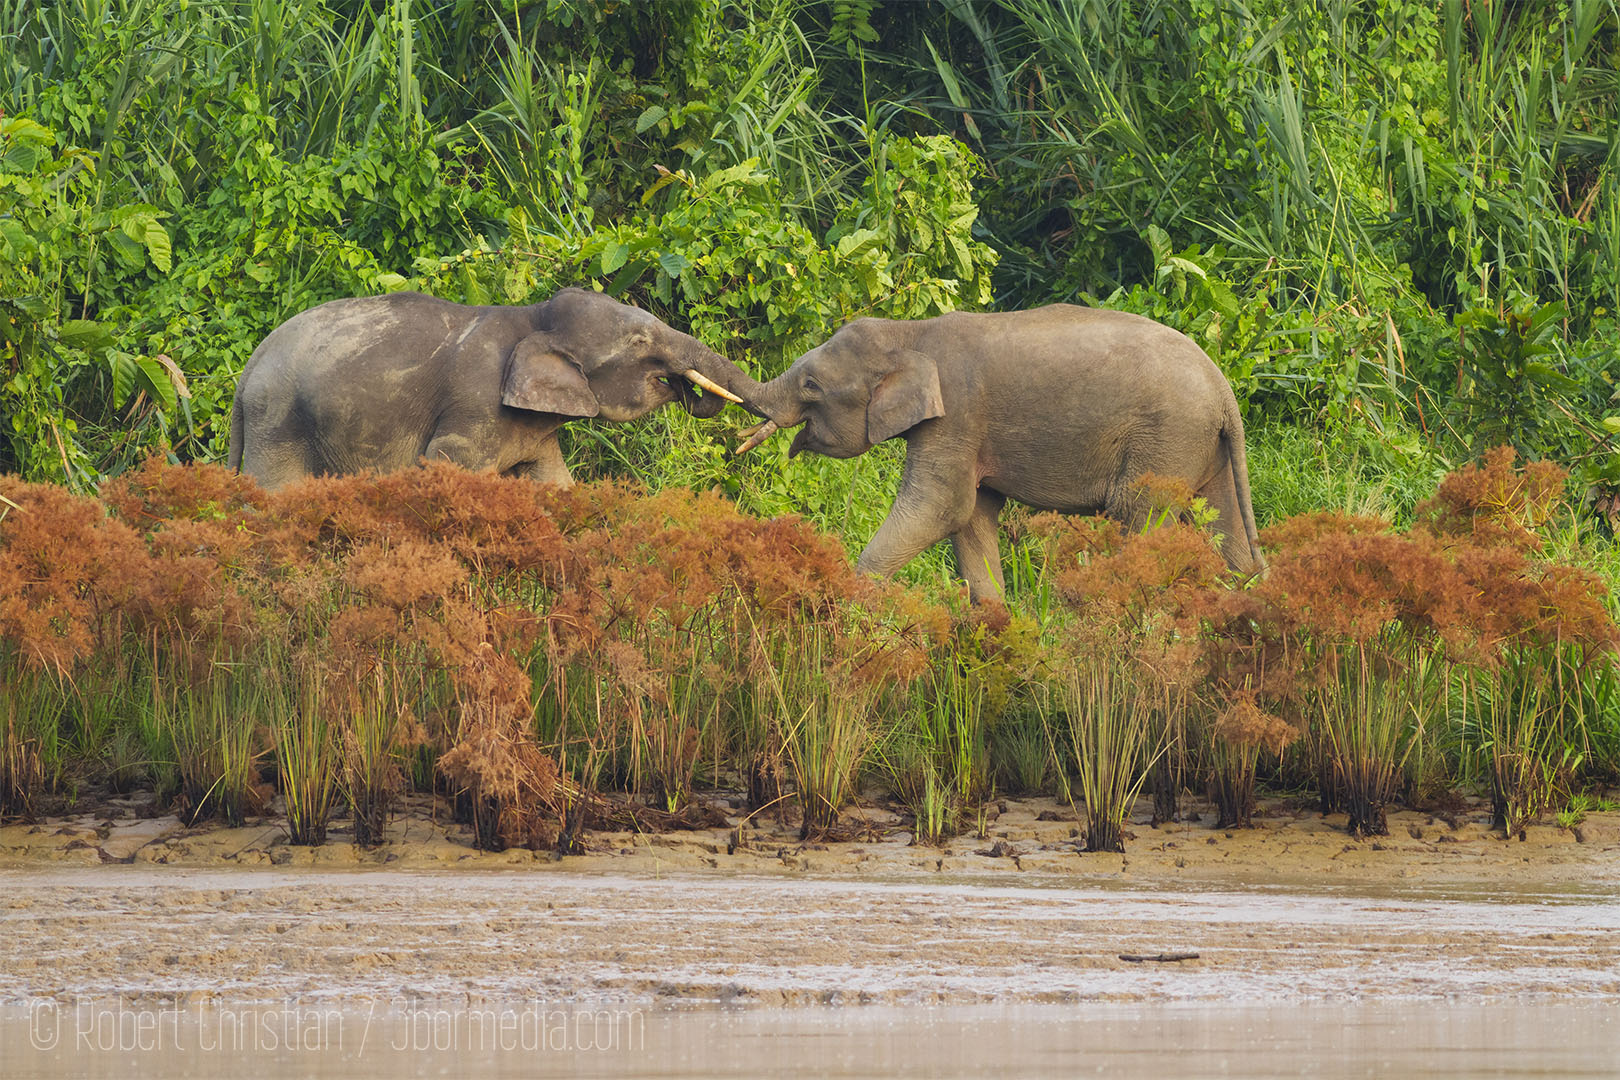 Two Elephants square off on the banks of the Kinabatangan.